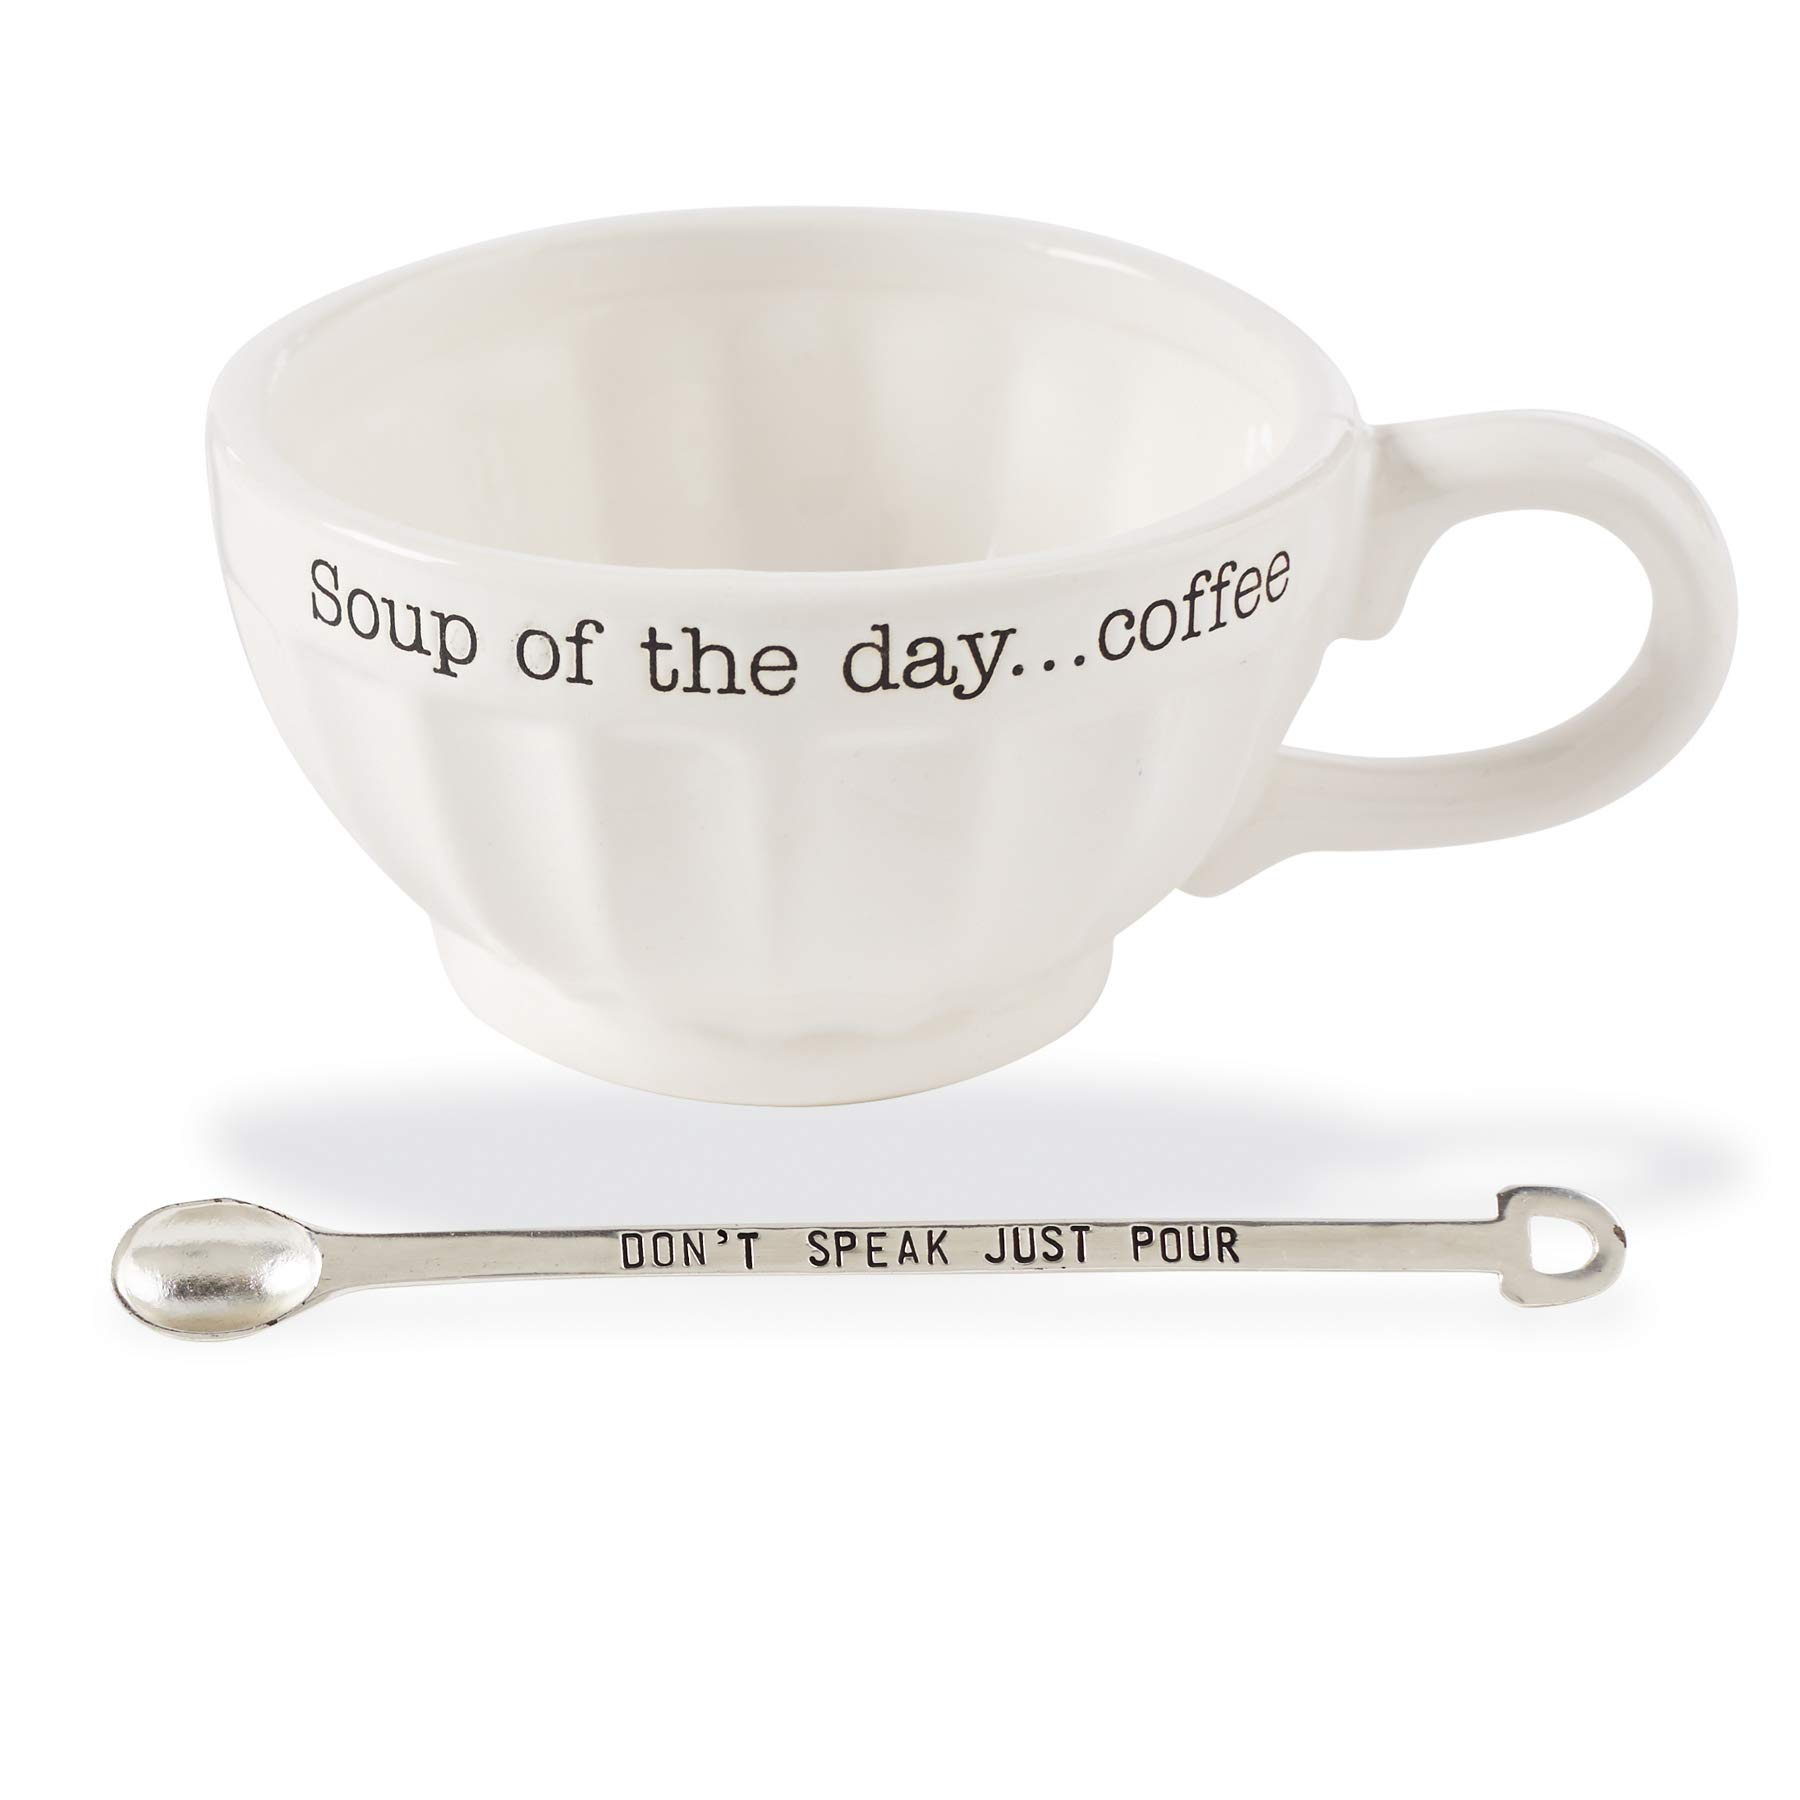 Mud Pie 43500013S Vintage Inspired Coffe Spoon-Soup of The Day Coffee Mug Set, One Size,